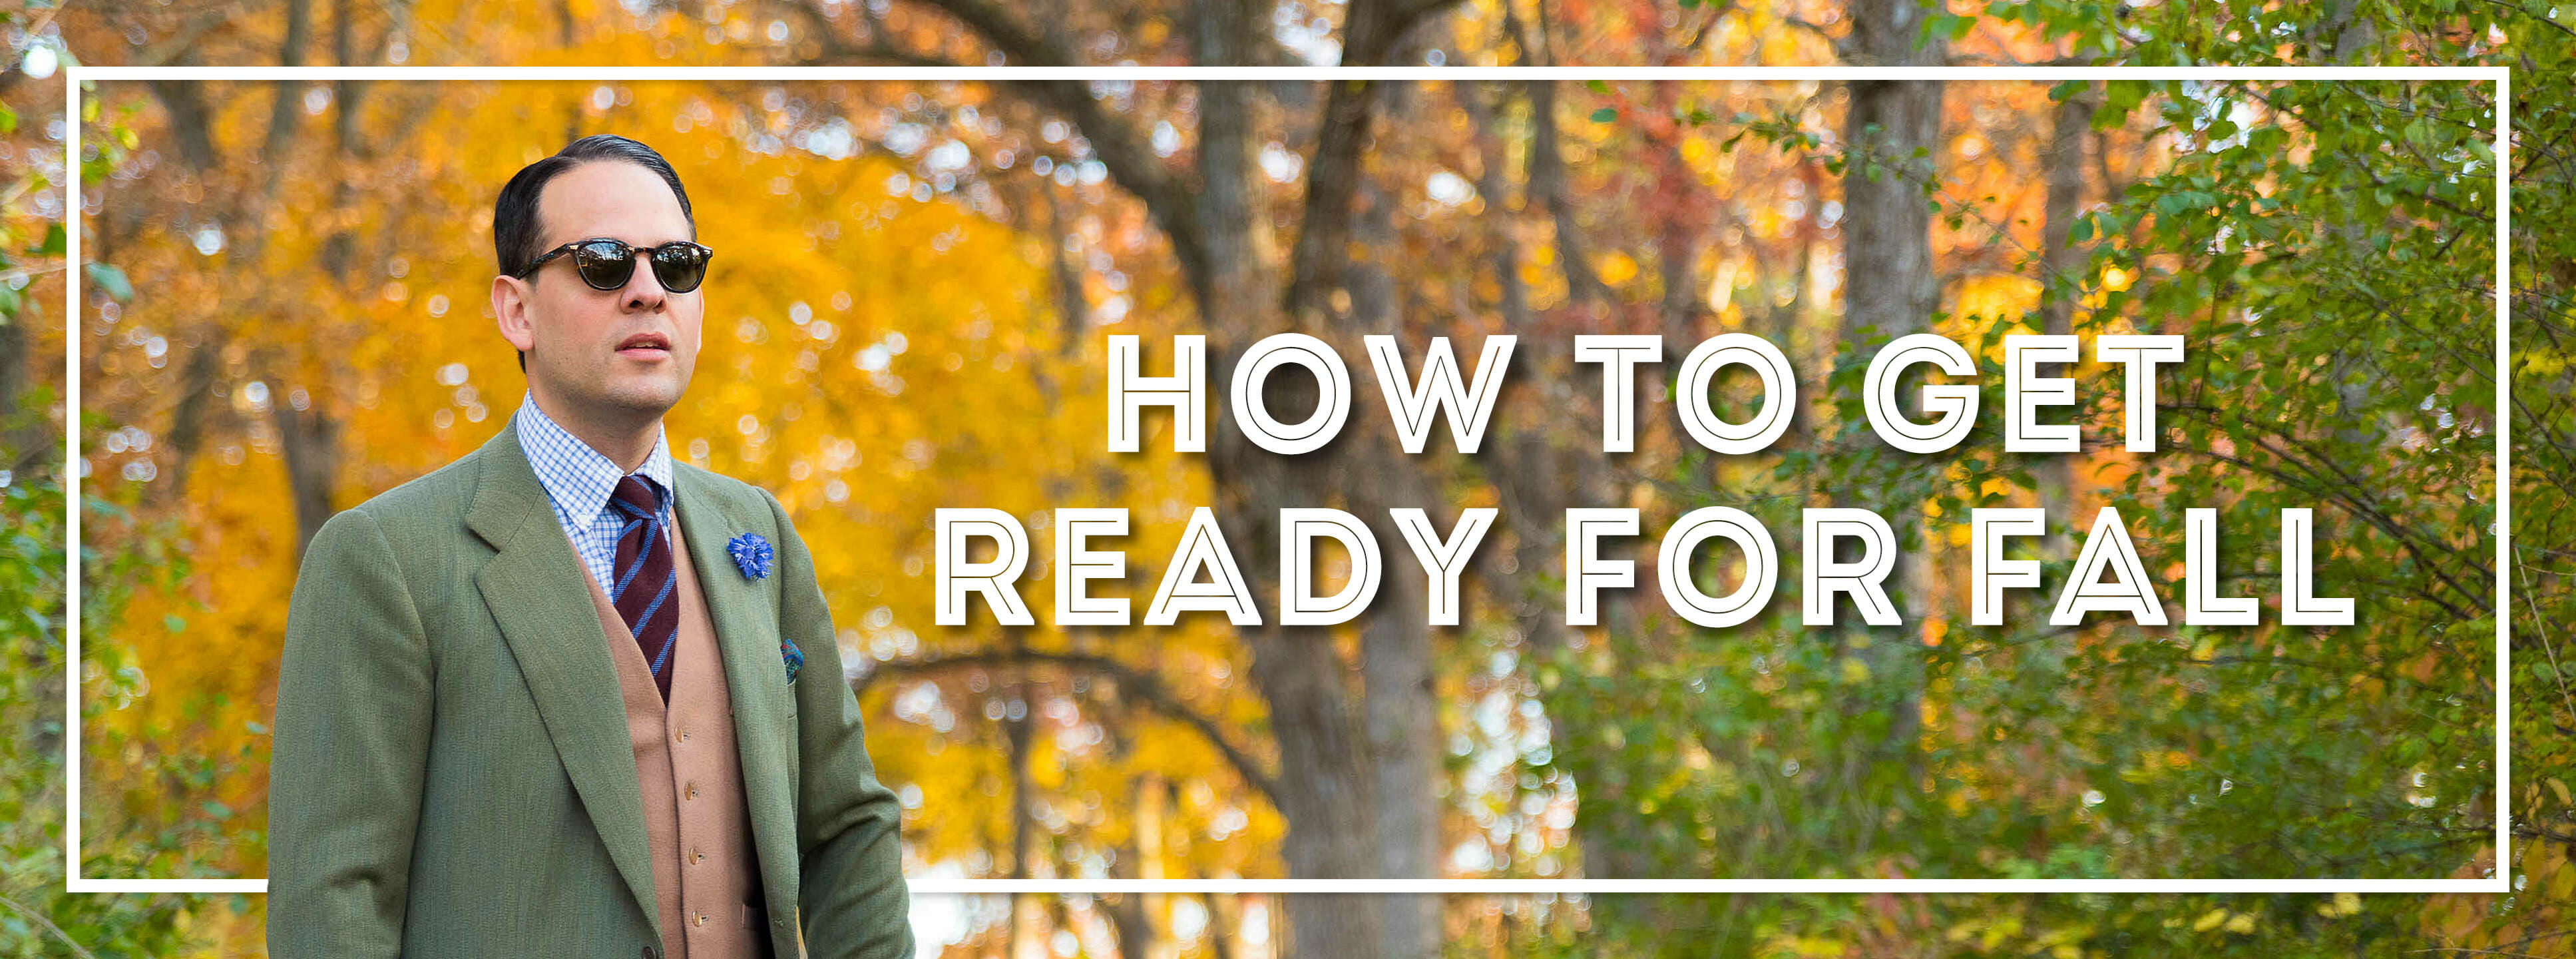 ba0bc49cfefa36 How to Get Ready for Fall: Wardrobe Maintenance & Best Buys ...